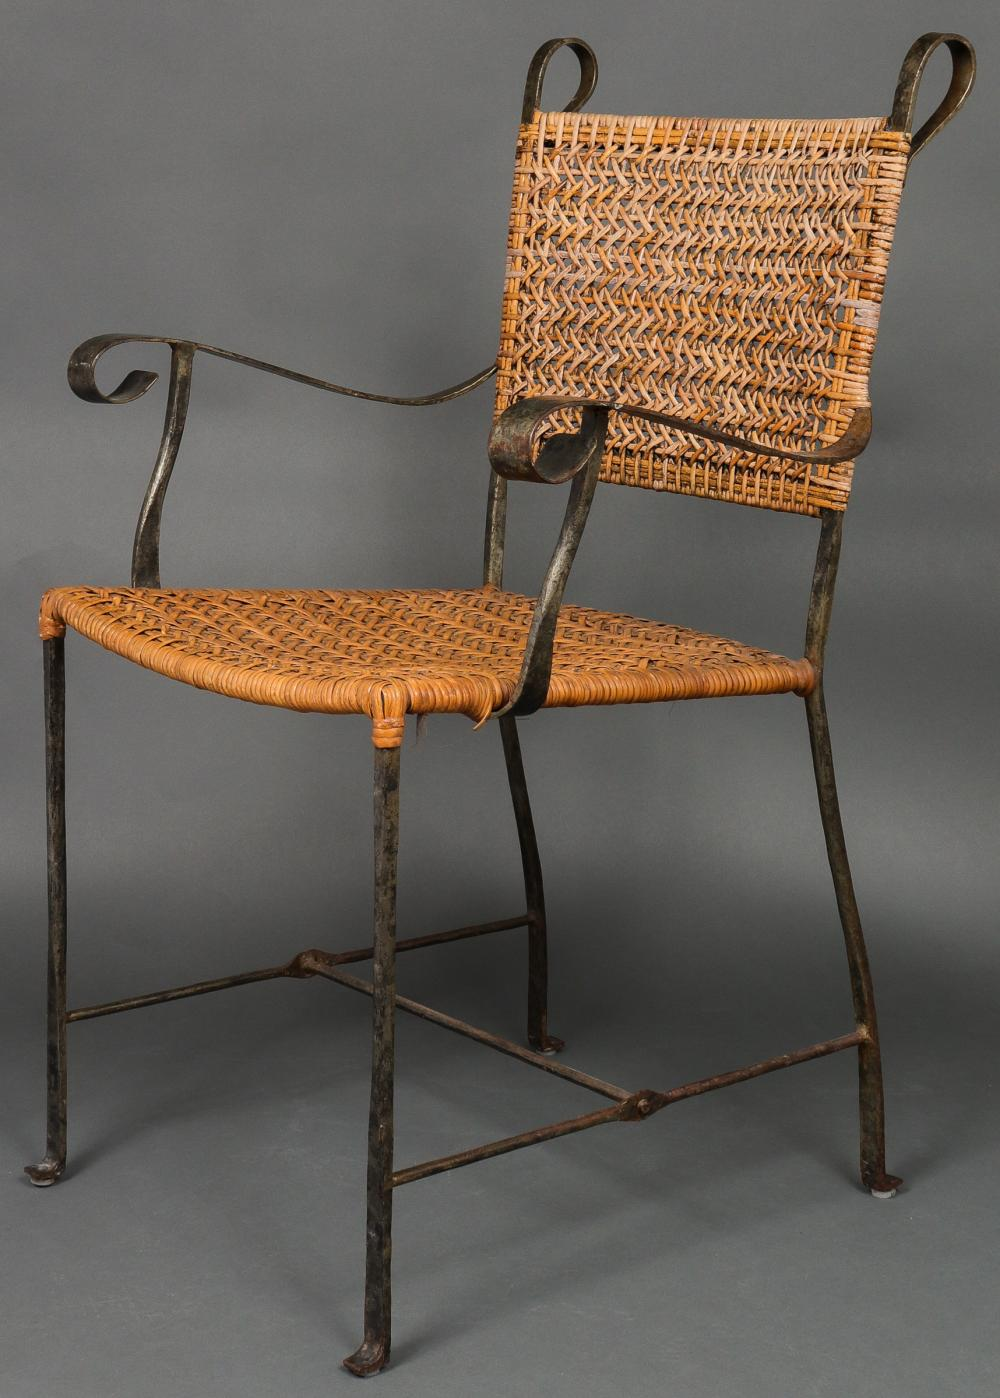 Sold Price Giacometti Manner Wrought Iron Wicker Chairs 5 Invalid Date Edt